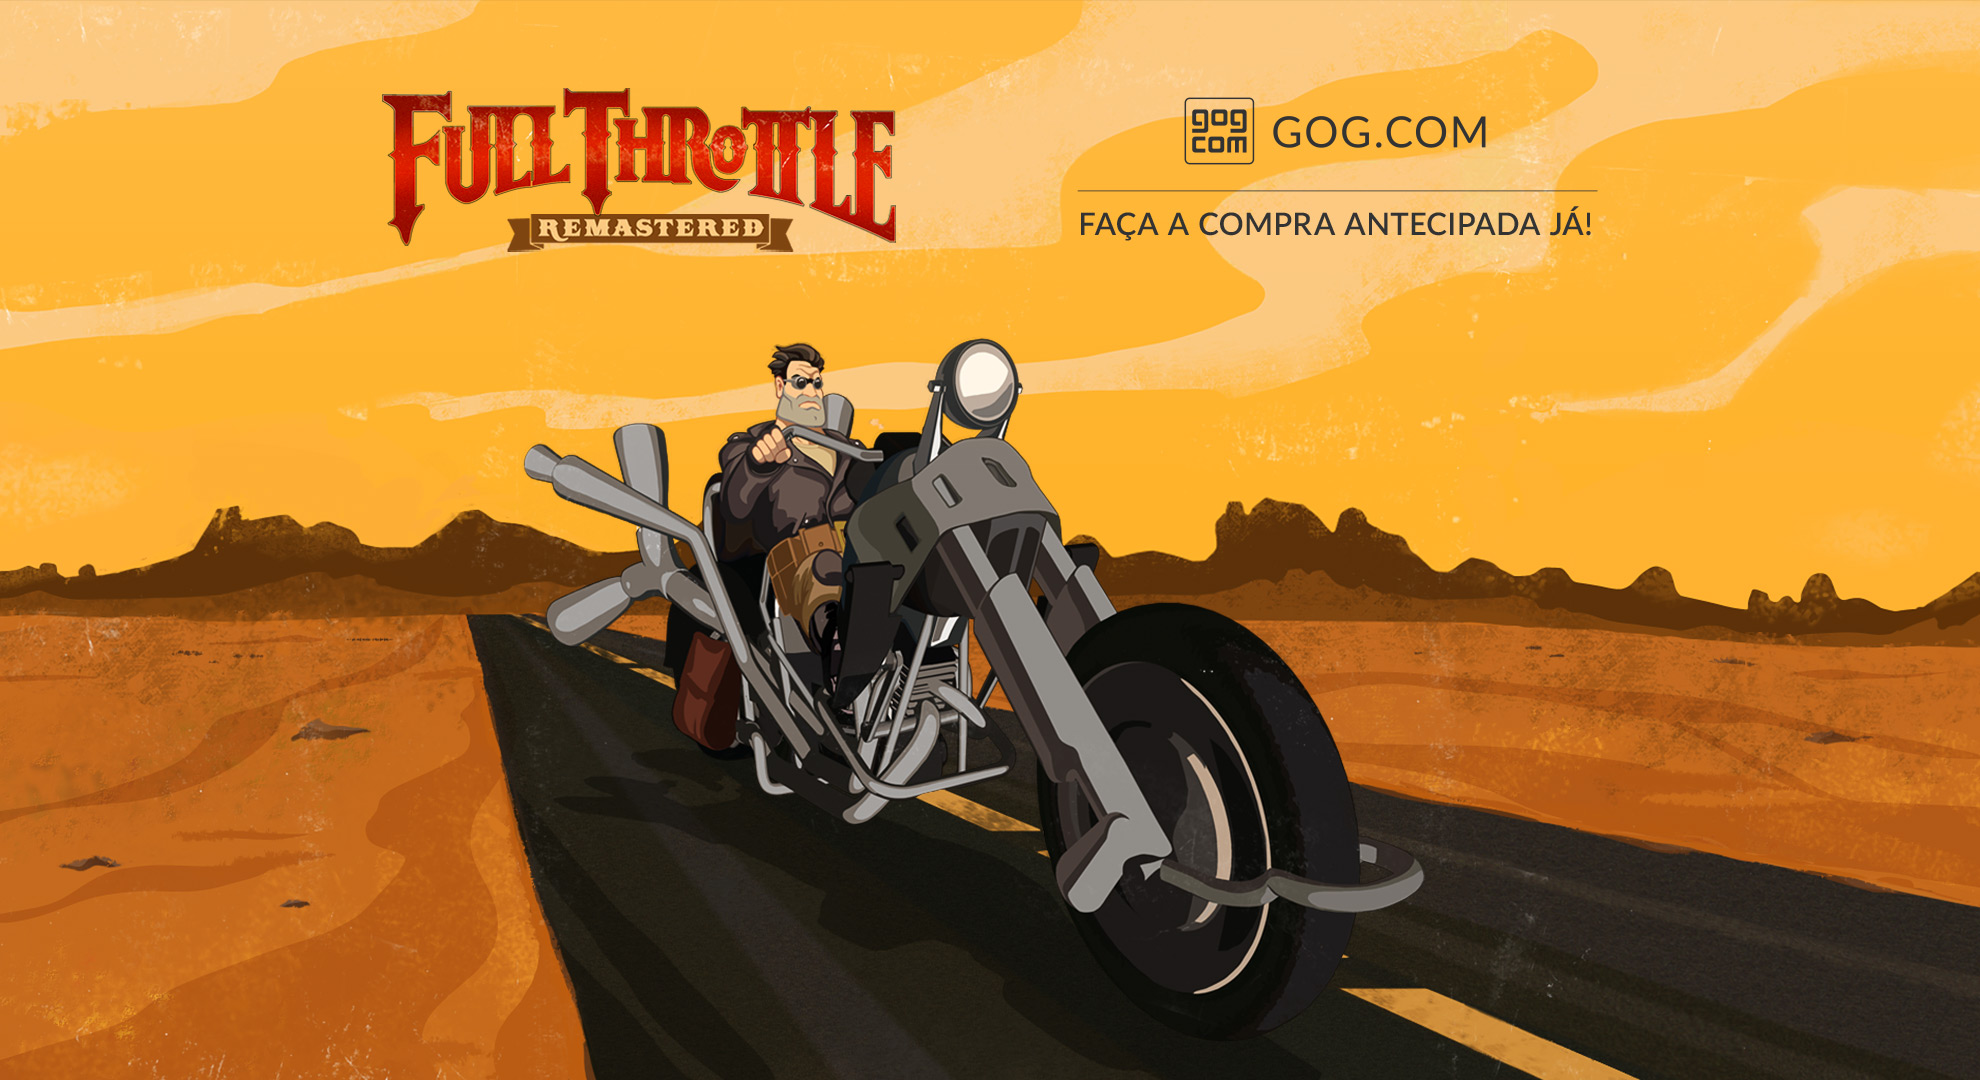 Full Throttle Remastered em oferta